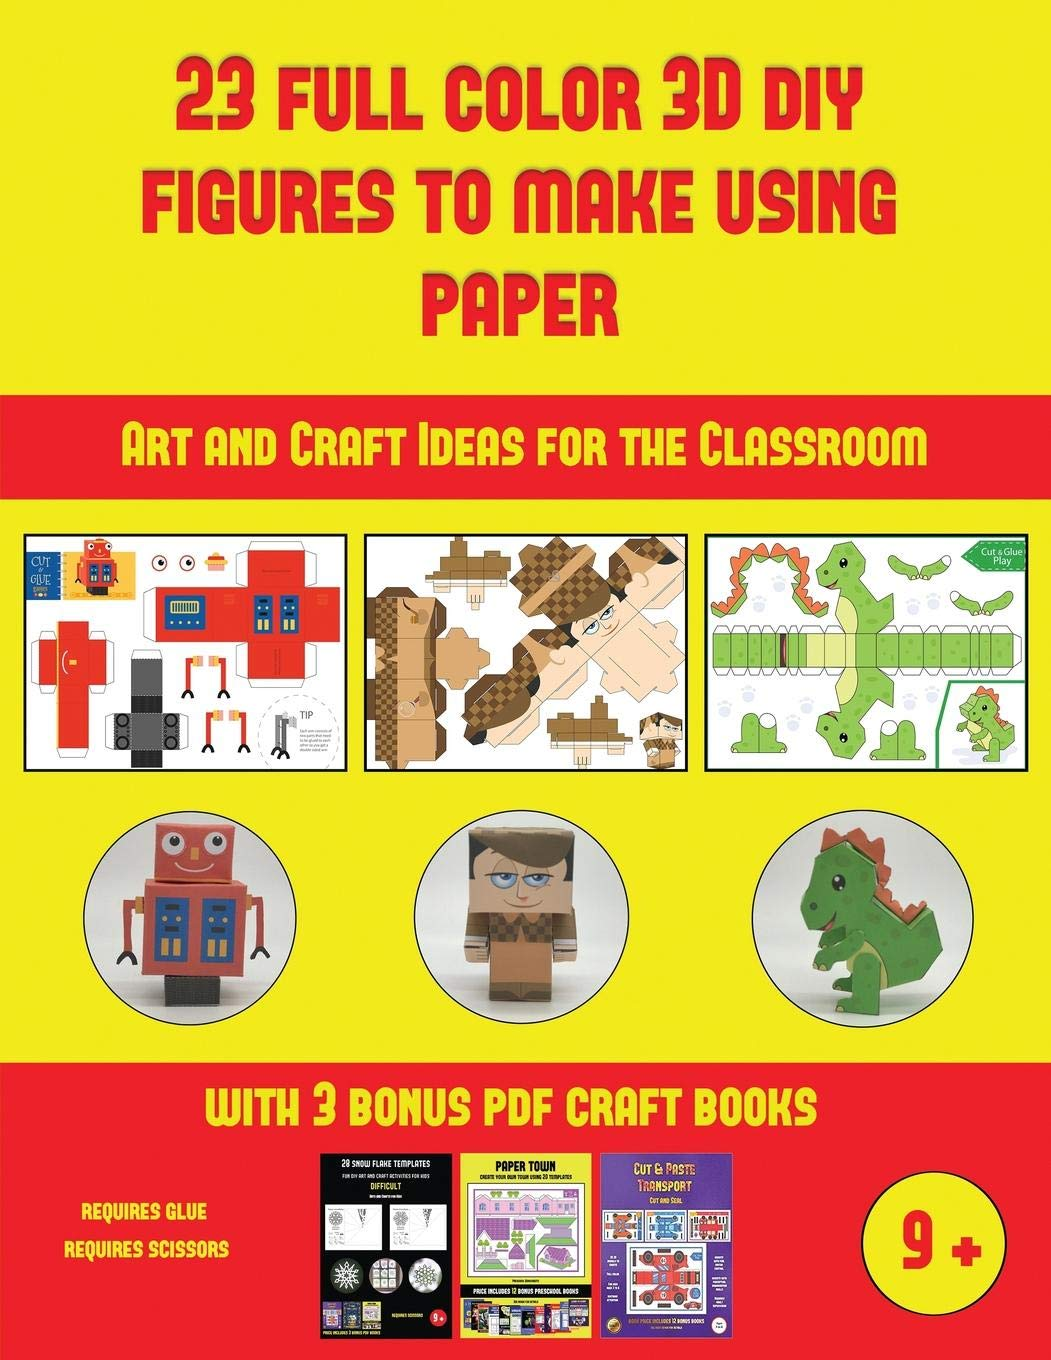 Art and Craft Ideas for the Classroom (23 Full Color 3D Figures to